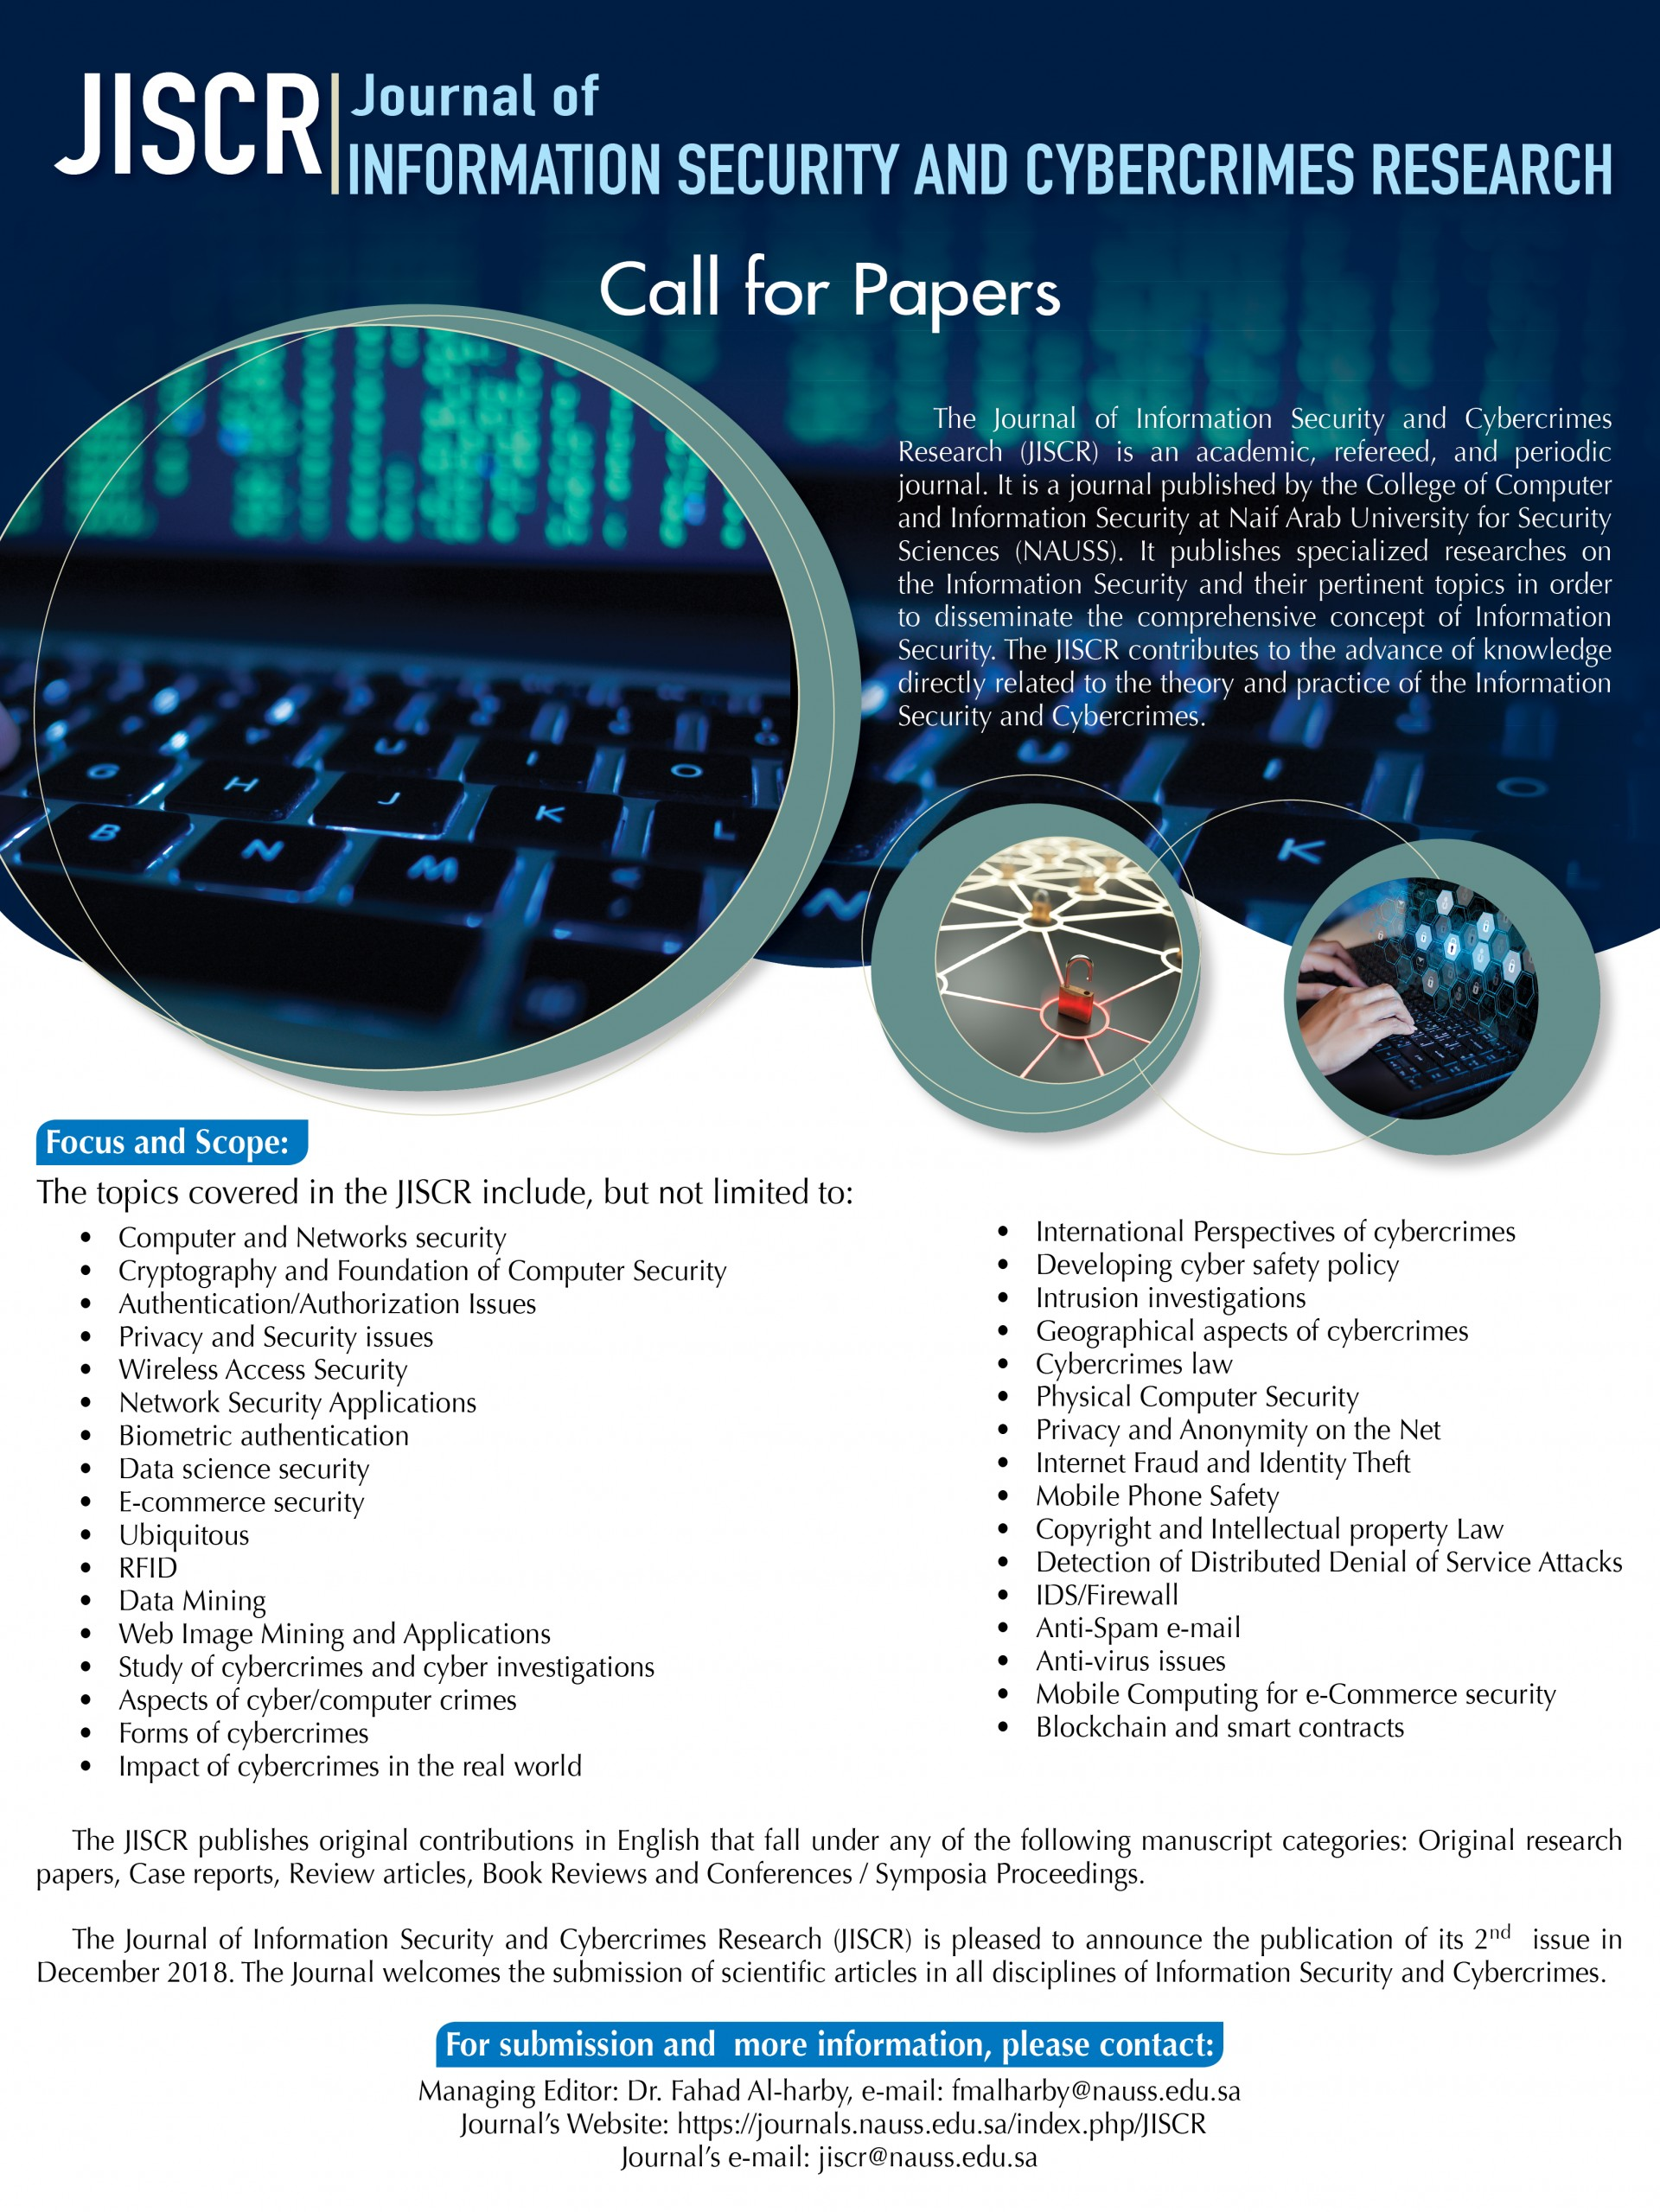 021 Research Paper Call For December Cyber Security Wondrous Papers 2018 Pdf Topics 1920